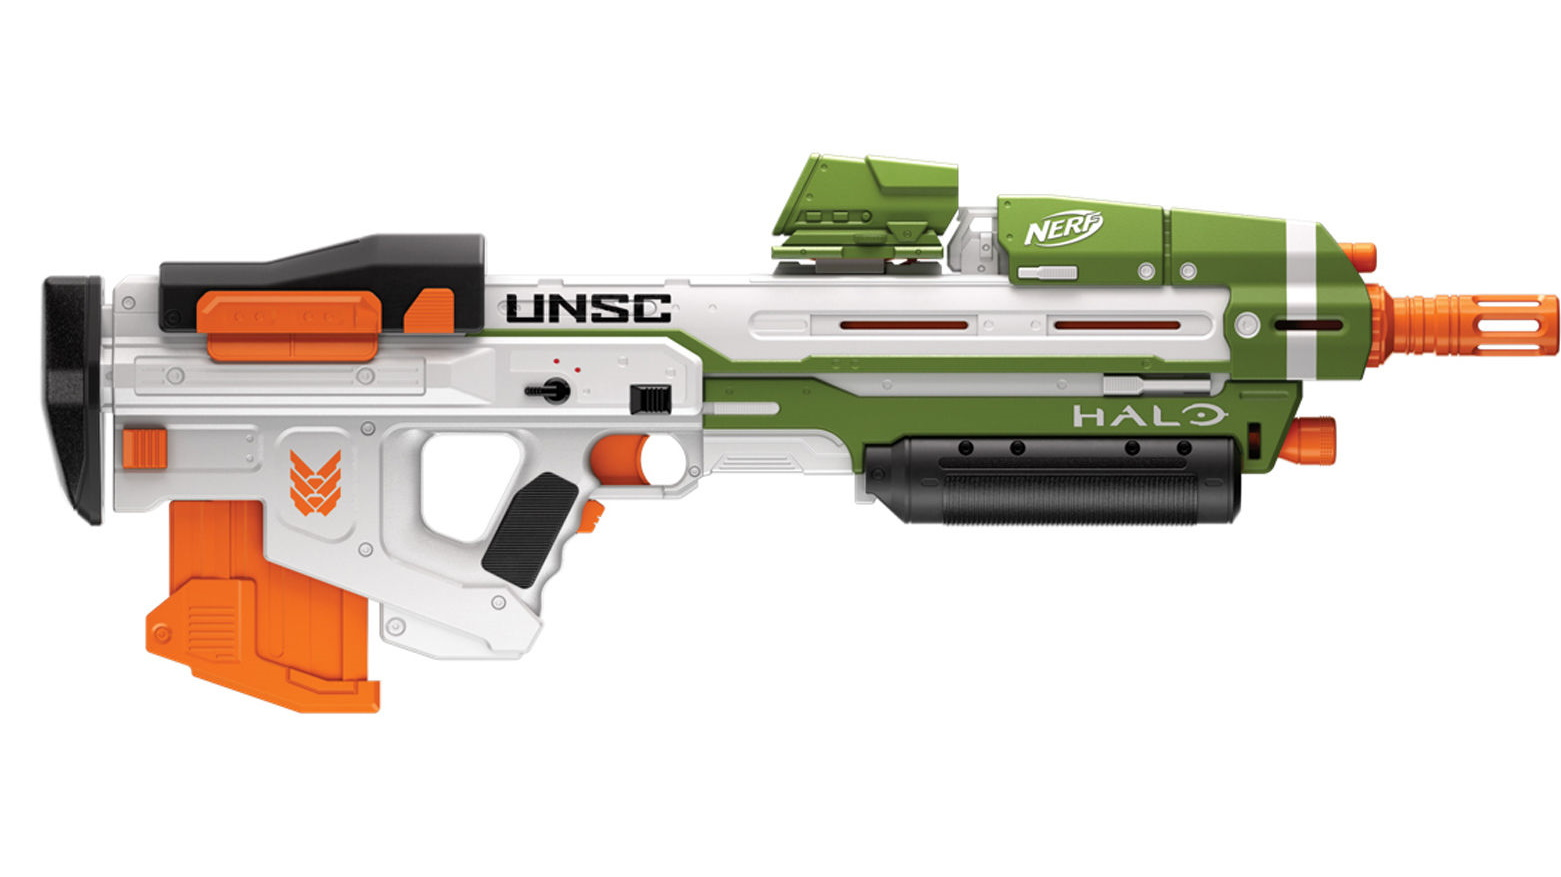 Upcoming Halo Infinite Nerf guns confirm weapon skins, hint at release date - VG247